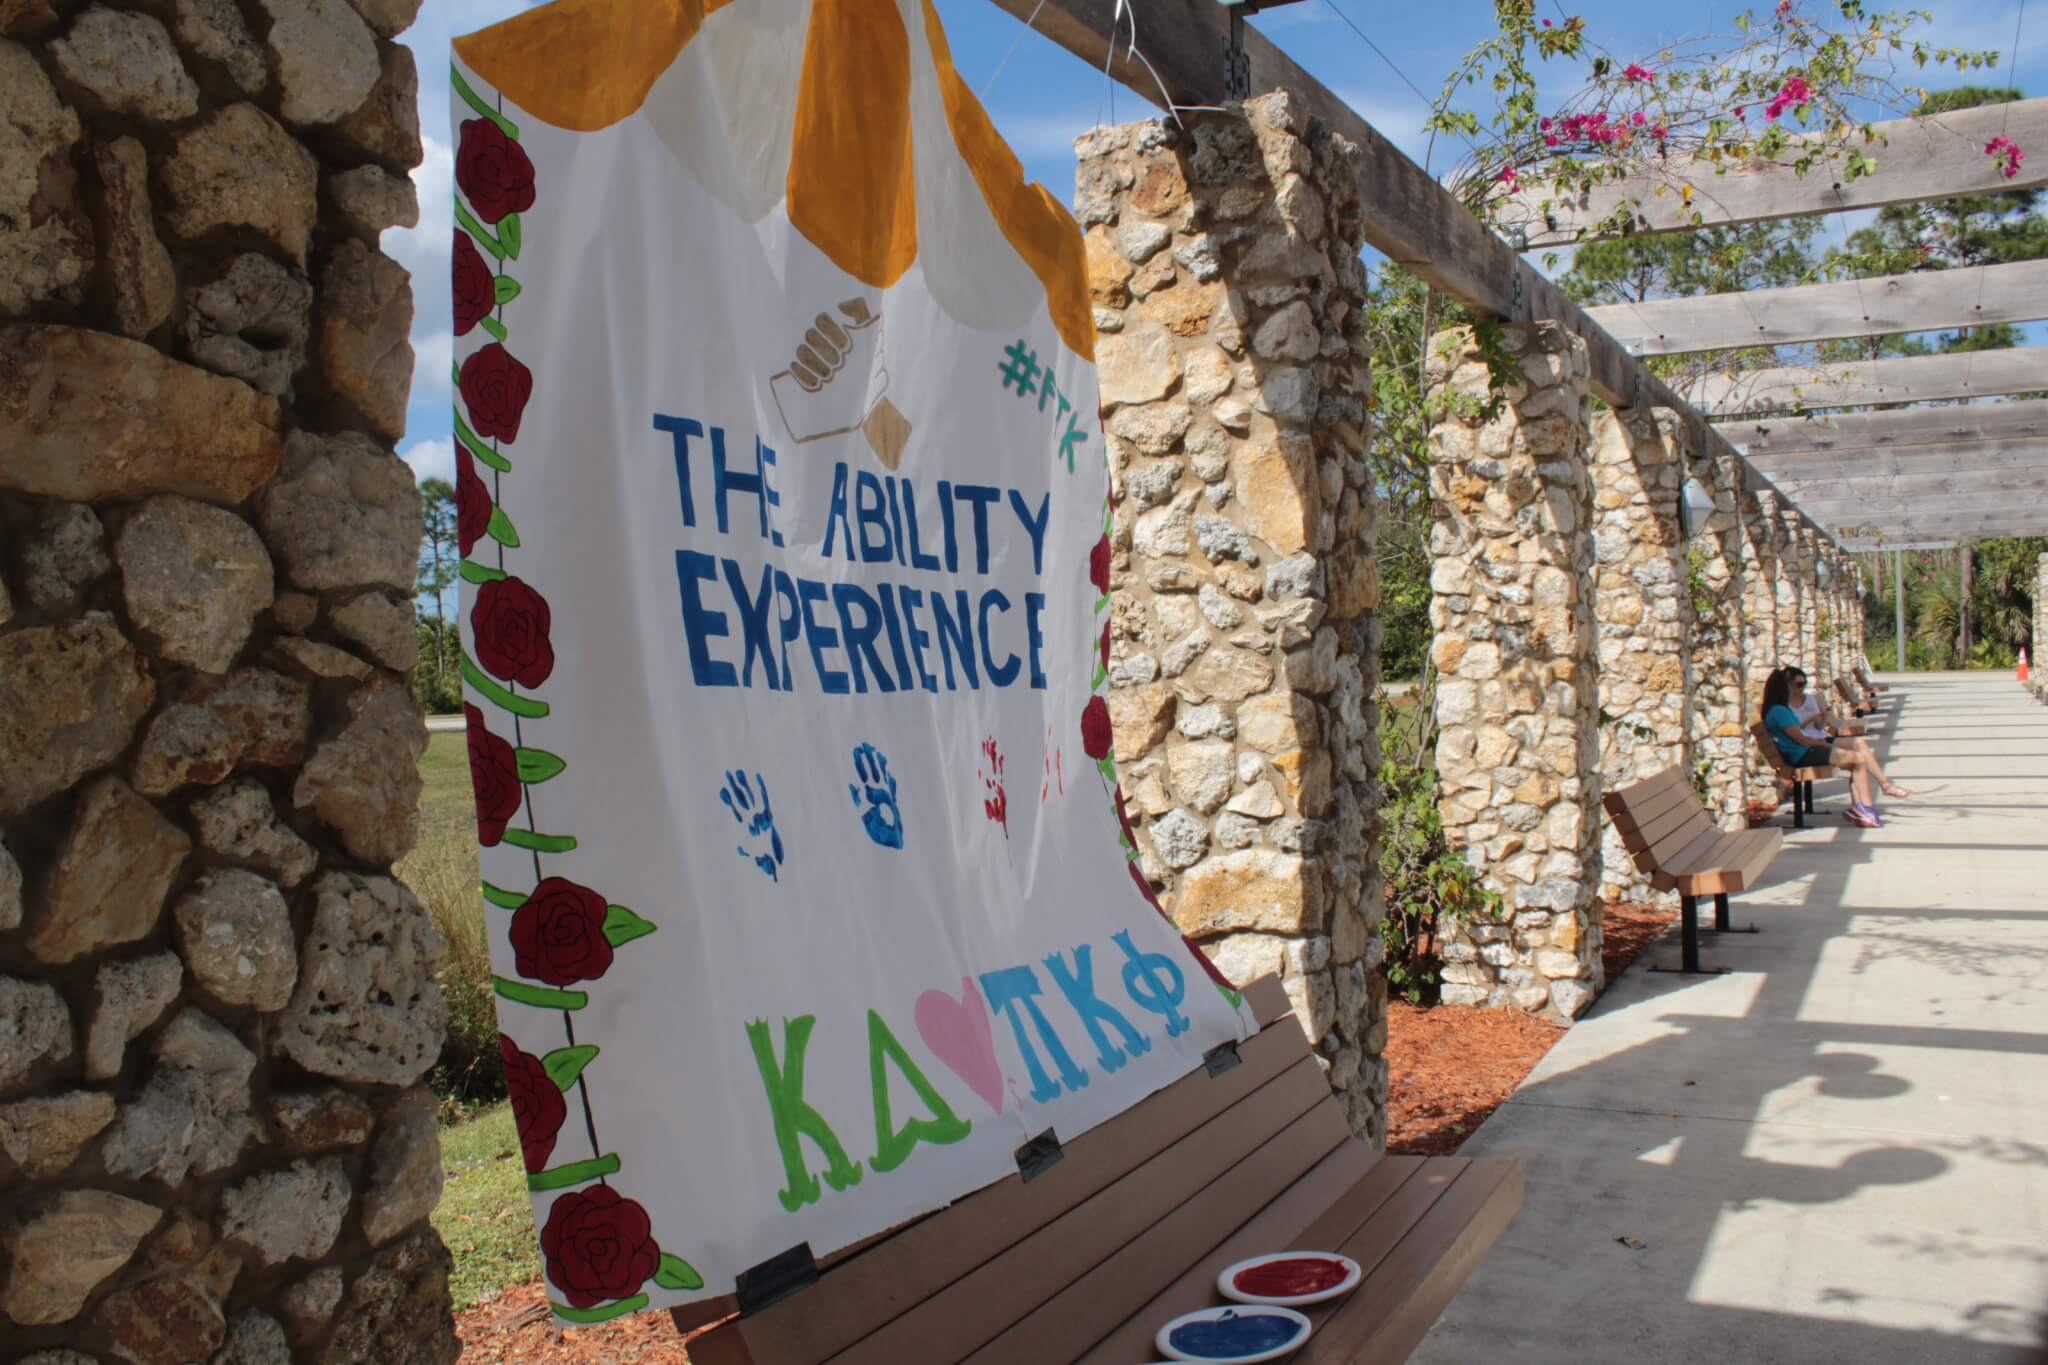 Pi Kappa Phi fights to spread positivity